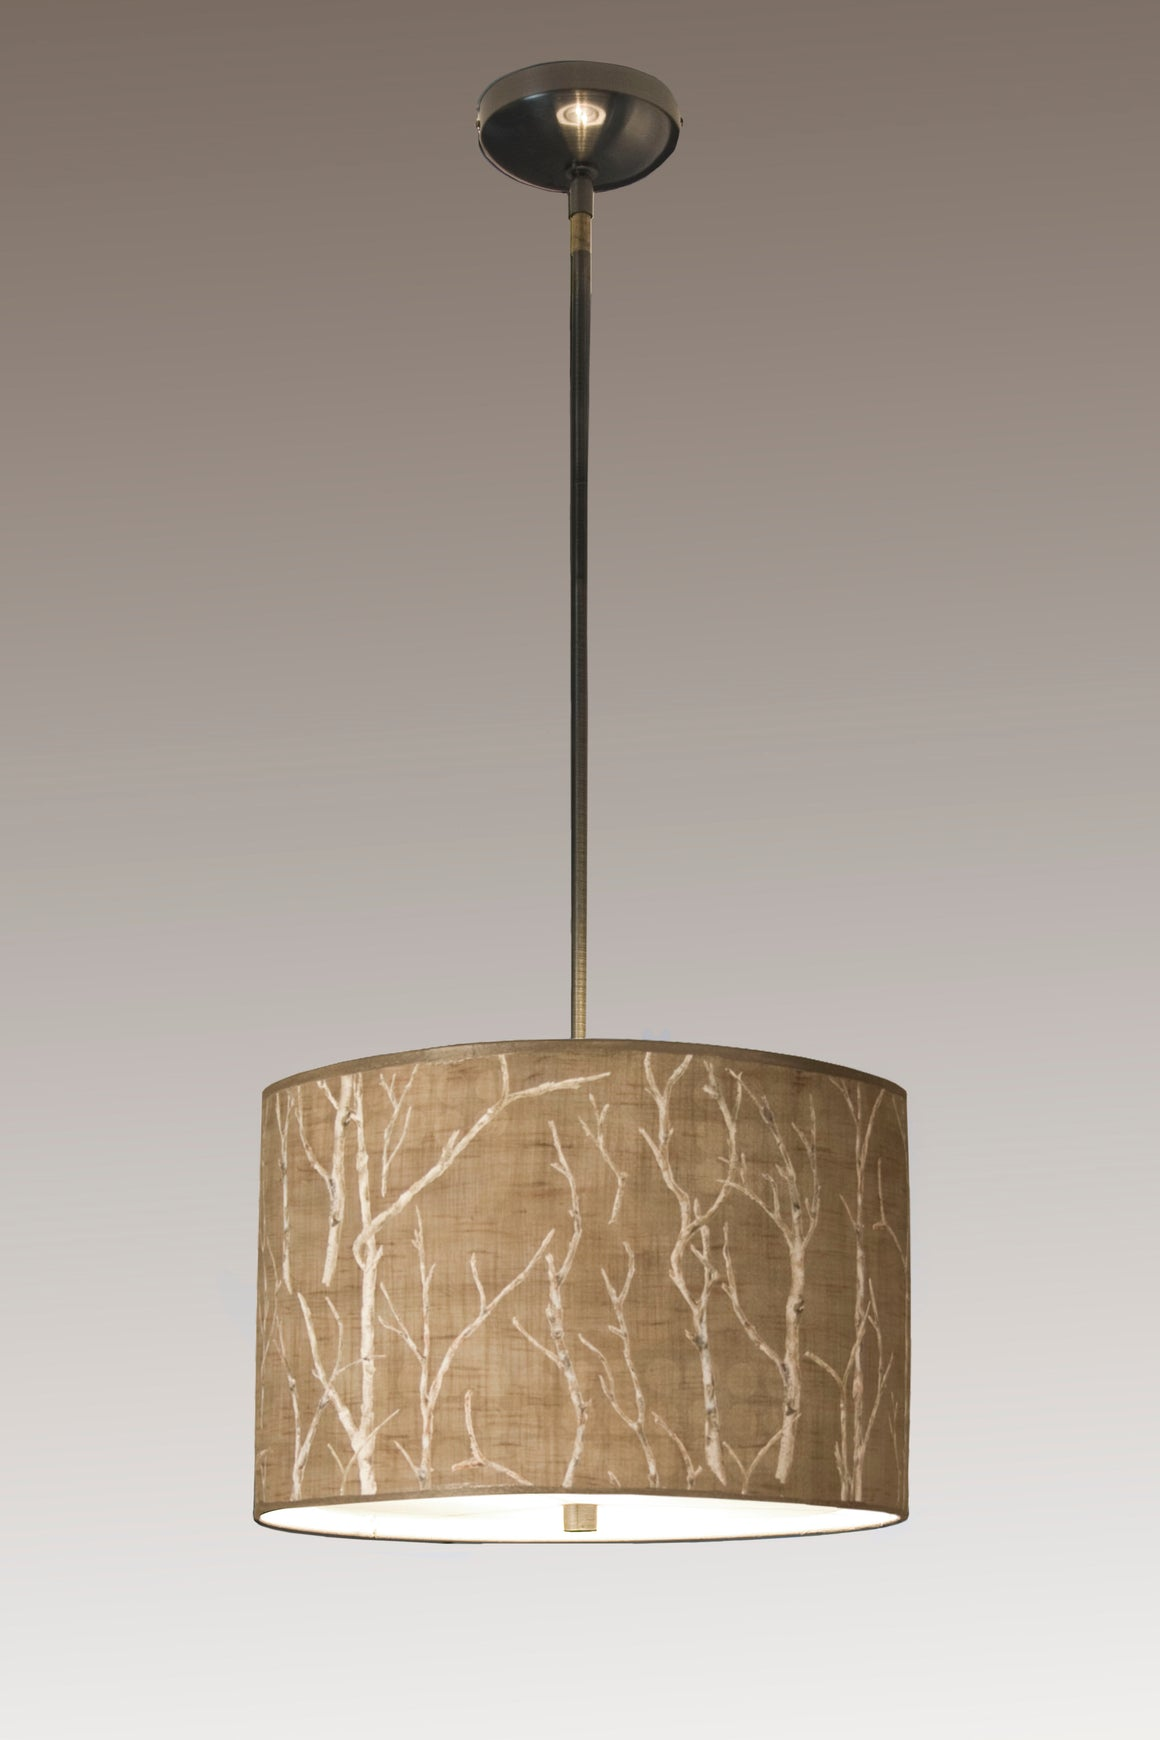 Large Drum Pendant Lampshade with Satin Nickel in Twigs